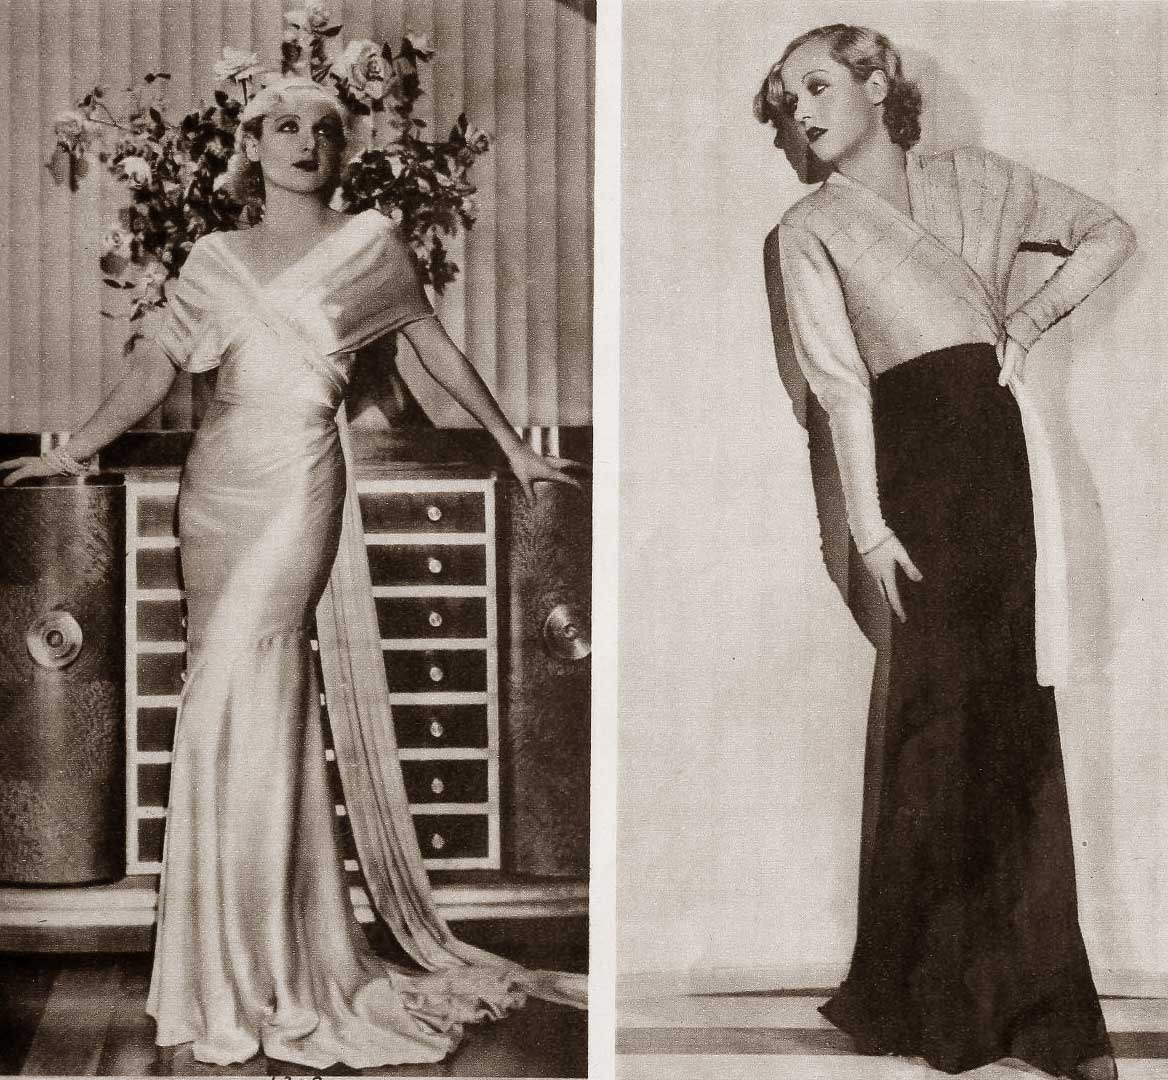 Evening Dress in the 1930s